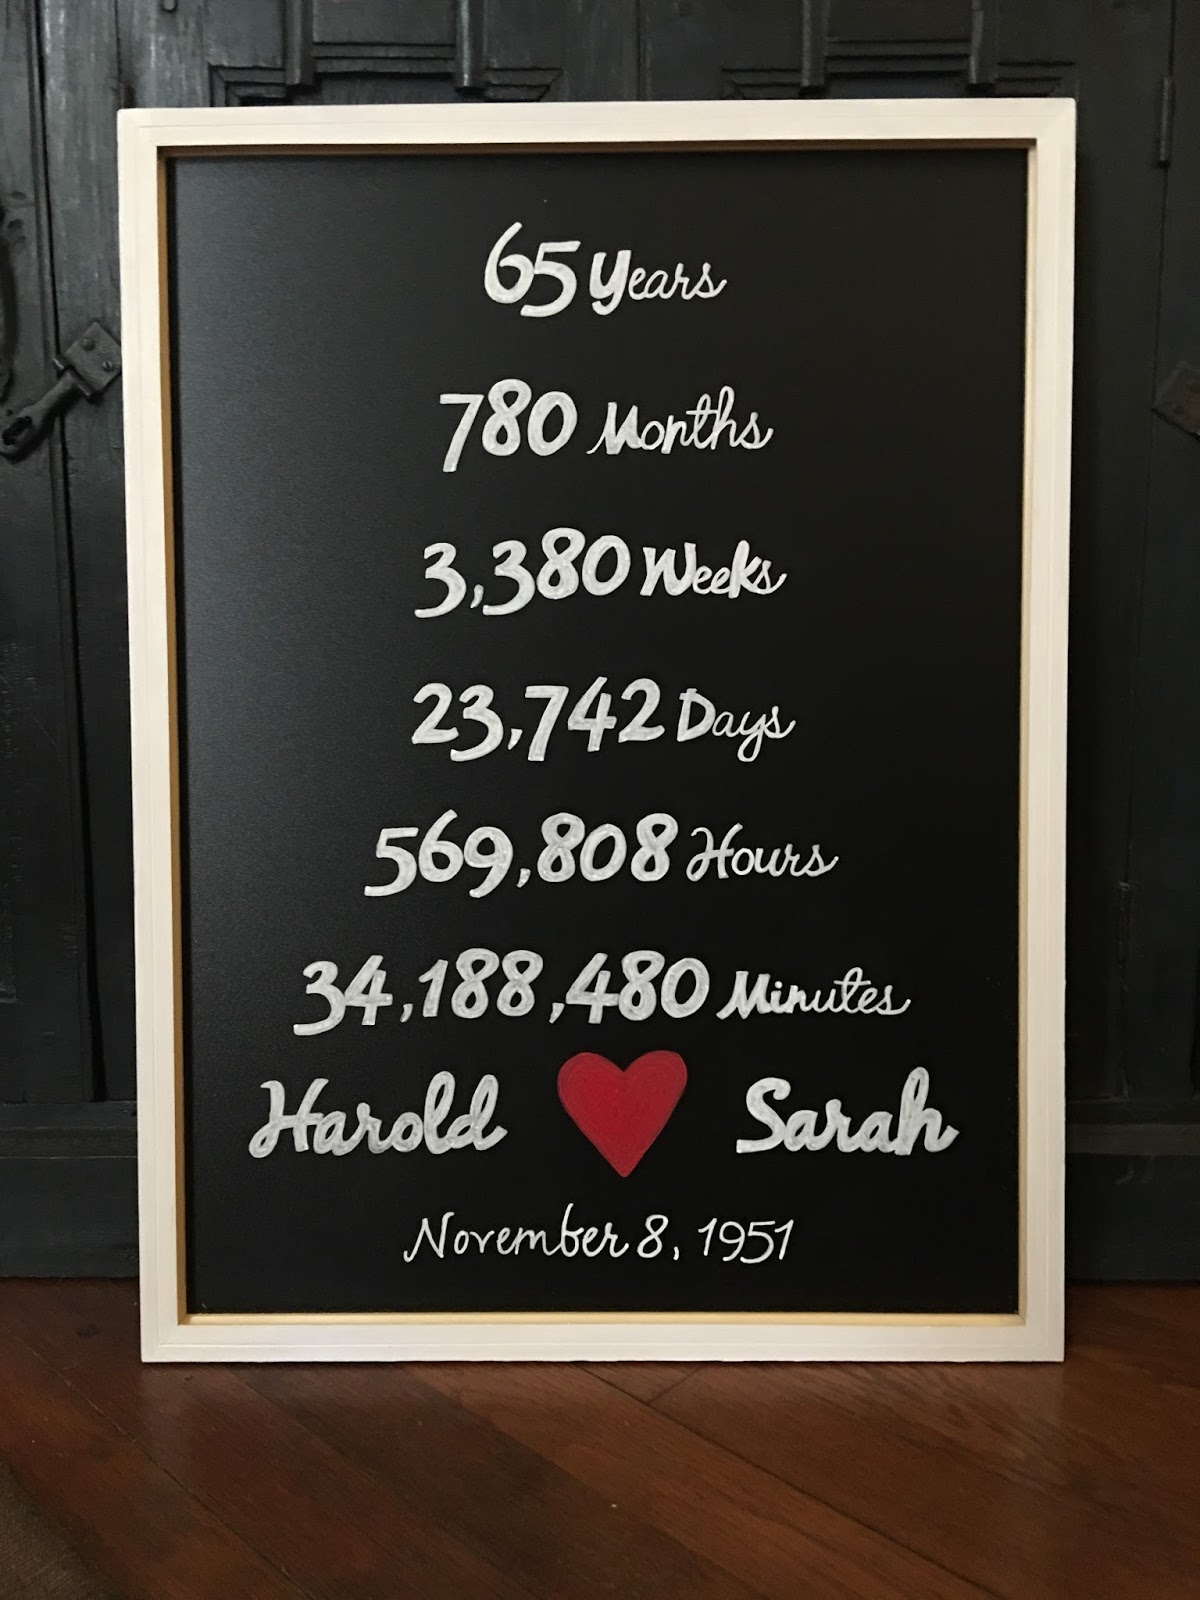 marla plain and small 65th wedding anniversary chalkboard art. Black Bedroom Furniture Sets. Home Design Ideas